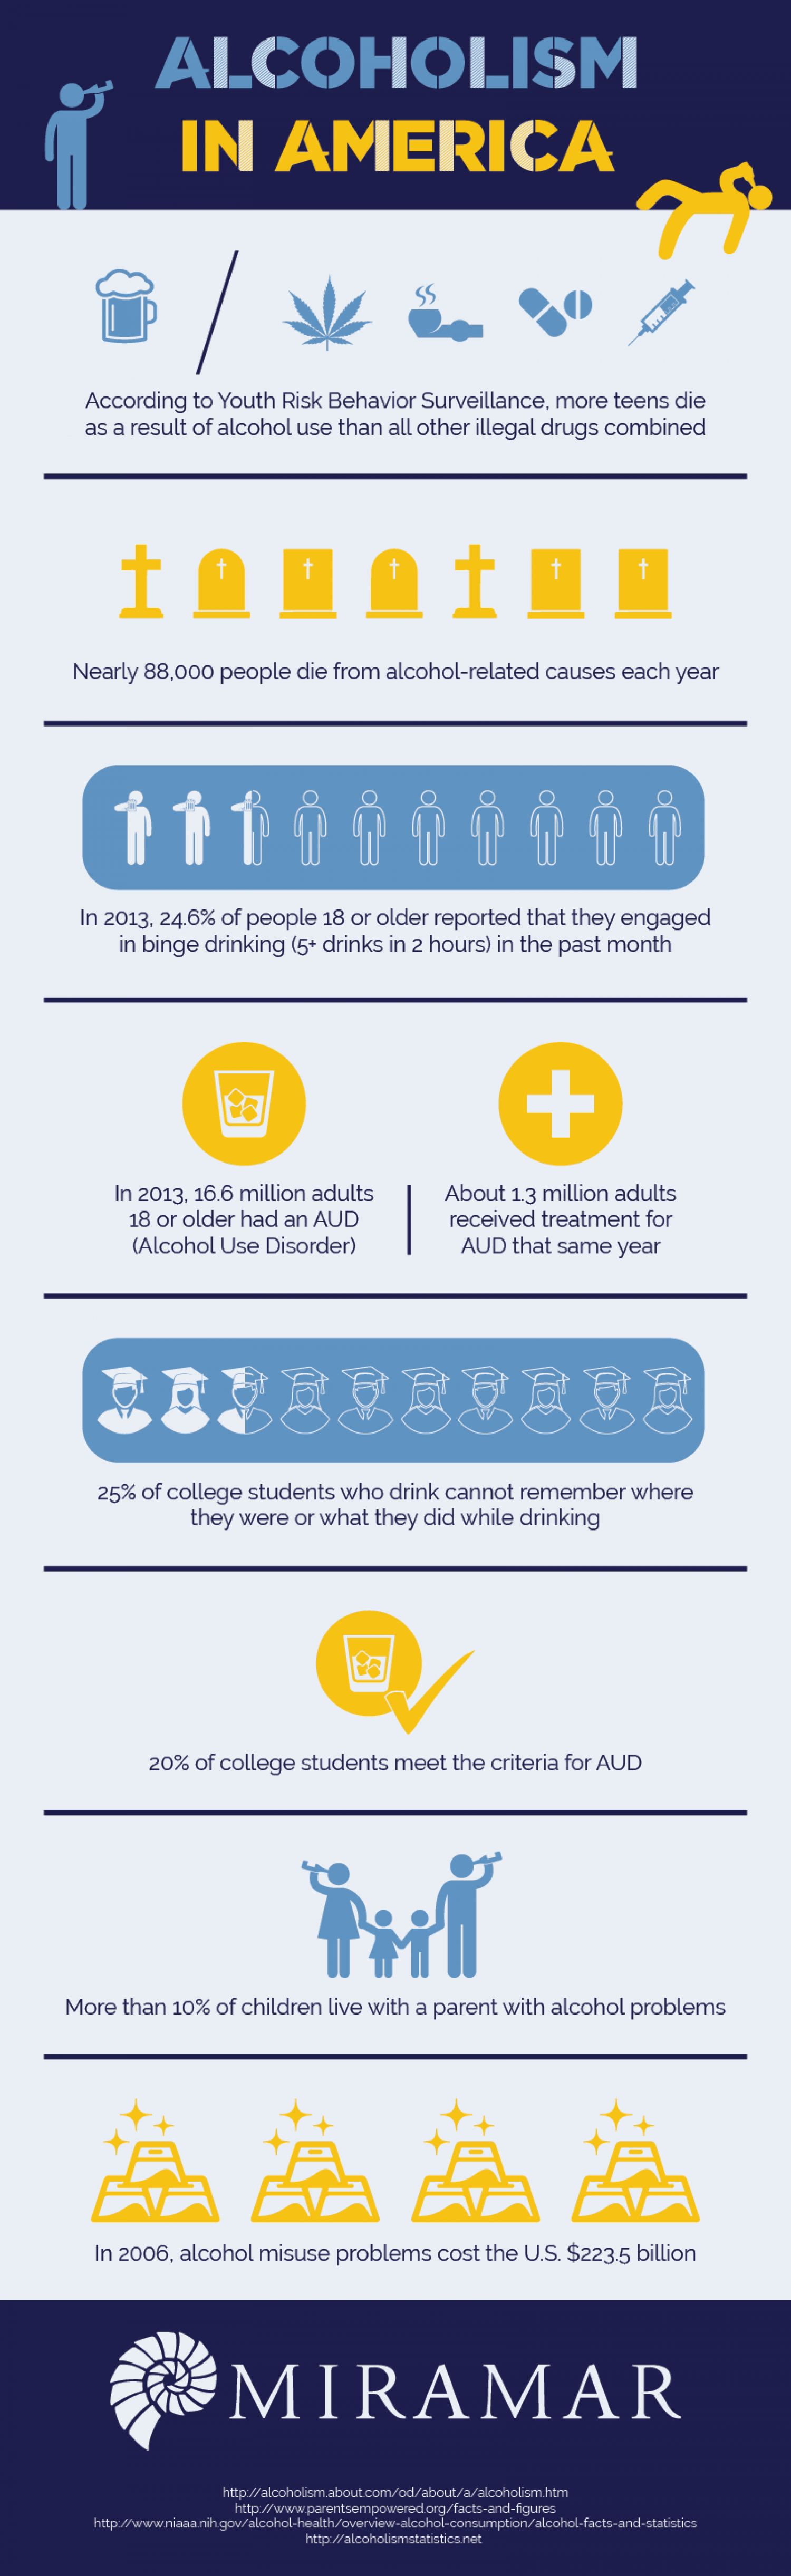 Alcoholism in America Infographic